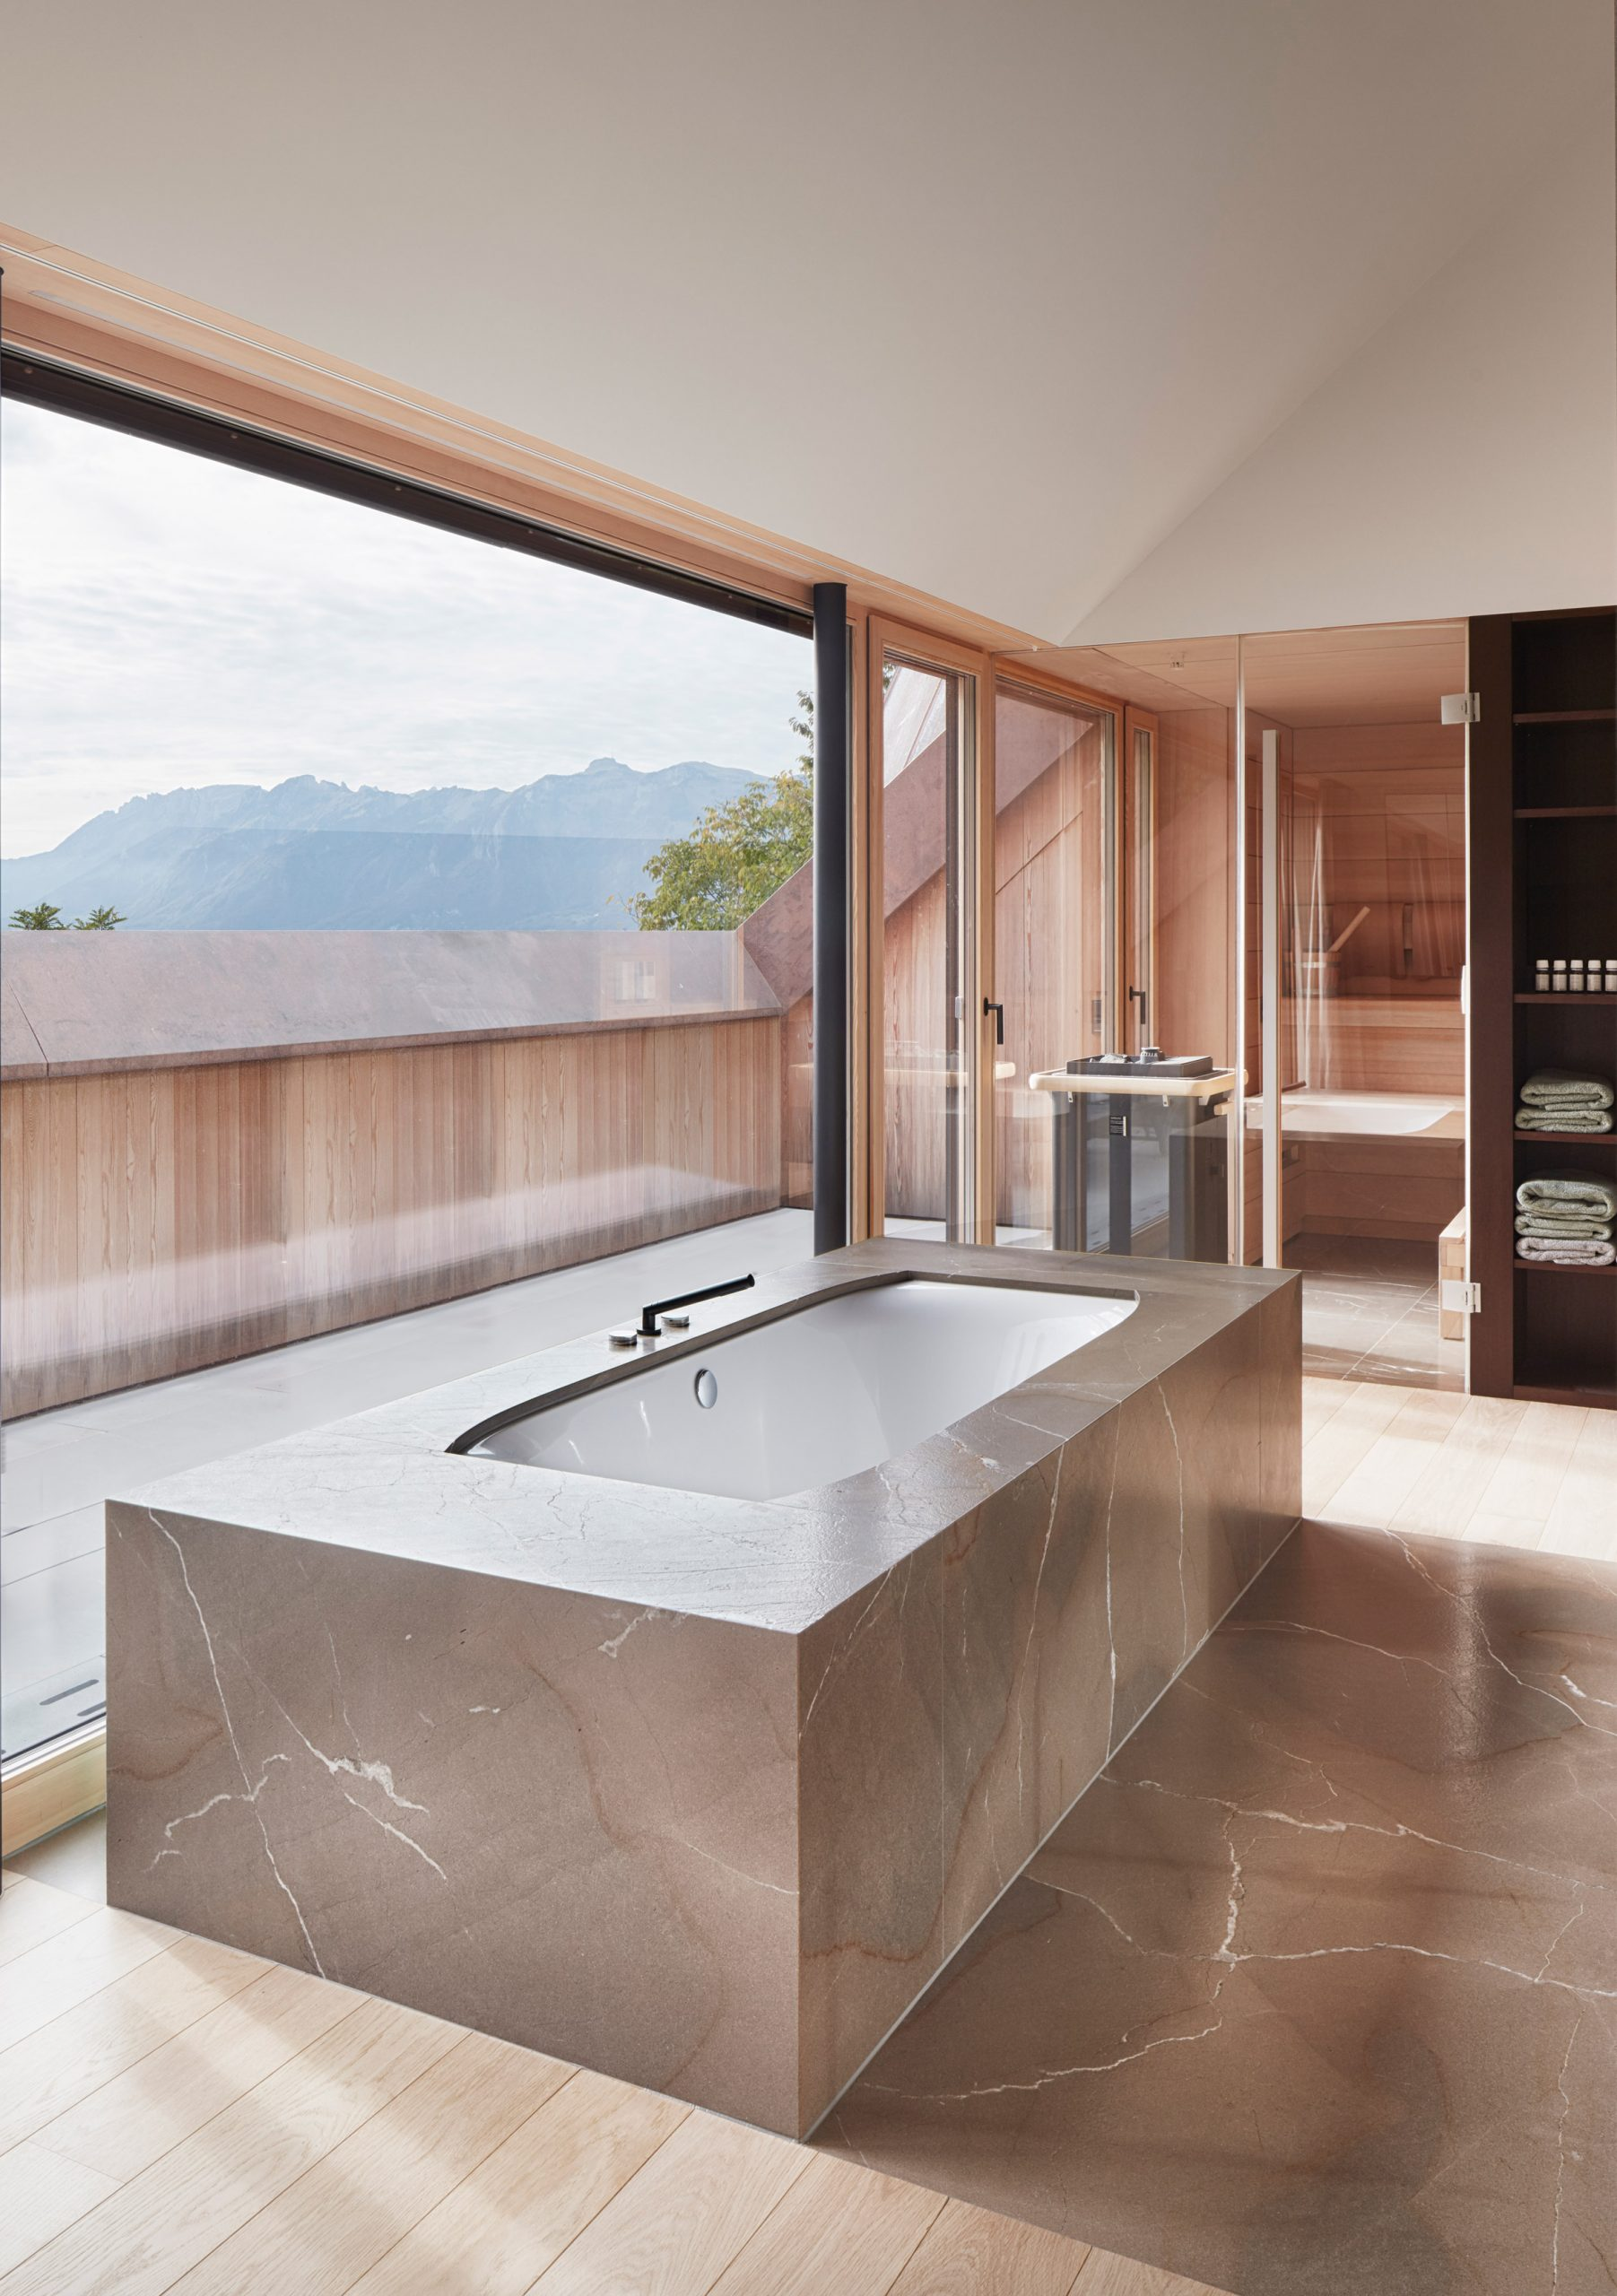 Spa-like bathroom in House with Three Eyes by Innauer-Matt Architekten